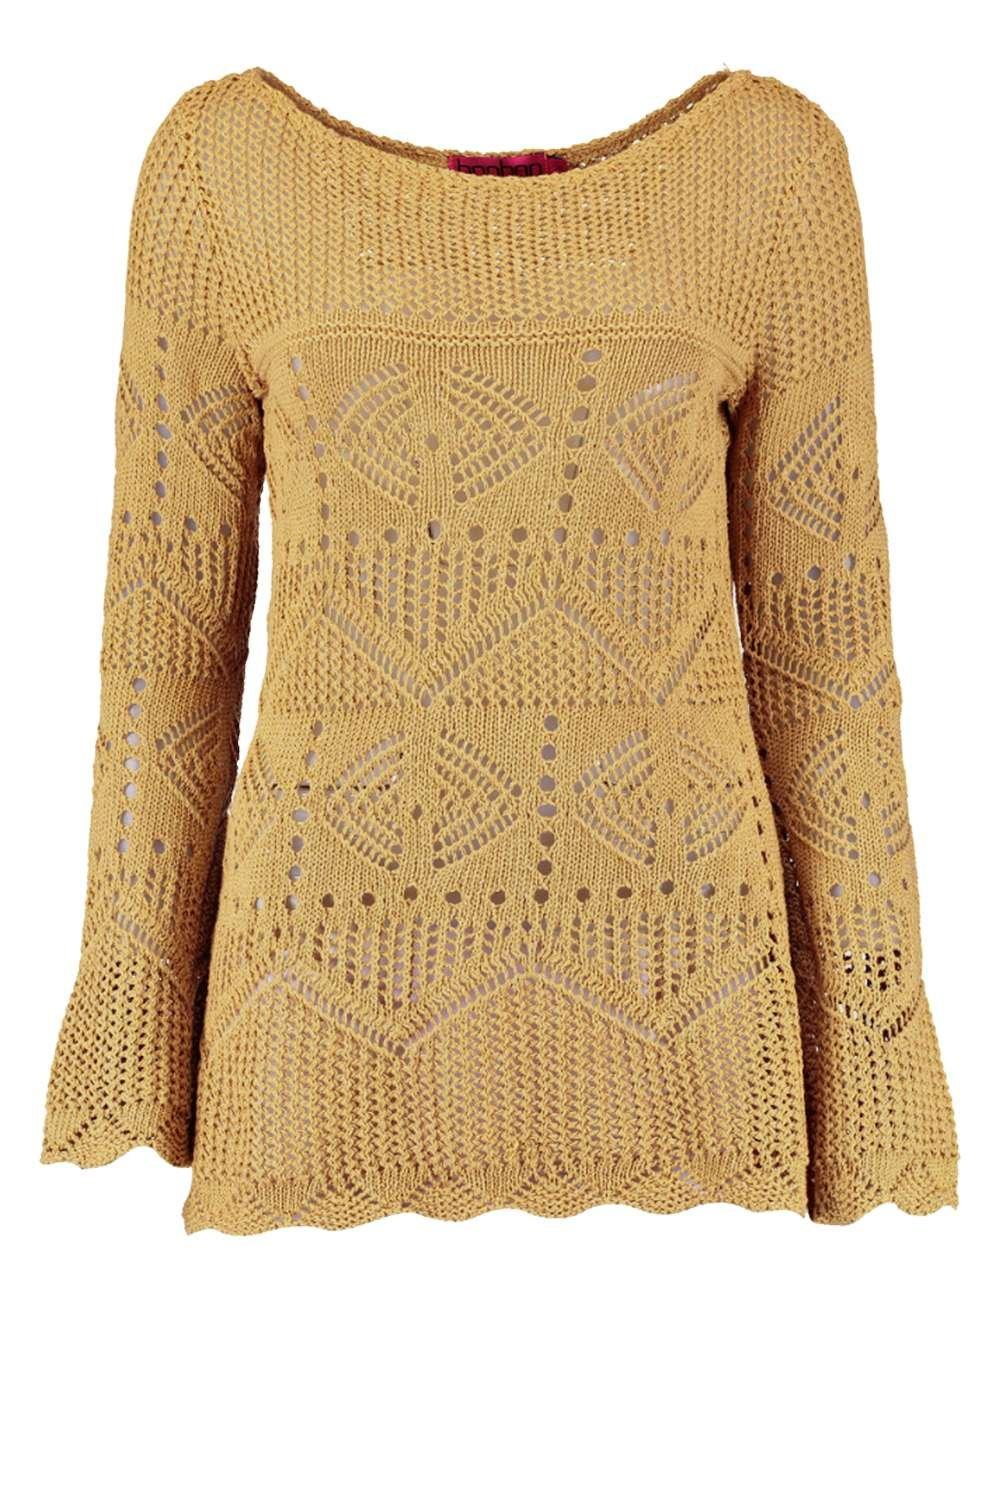 Autumn Sexy Women Lace Up Tunic Sweaters Pullover Jumper Crew Neck Blouse Tops Buy Now. Autumn Sexy - $ Autumn Sexy Women Lace Up Tunic Sweaters Pullover Jumper Crew Neck Blouse Tops Buy Now. Womens - $ Womens Autumn Top Casual Back Lace Long Sleeve Stripe Shirts Tunic Jumper Buy Now.